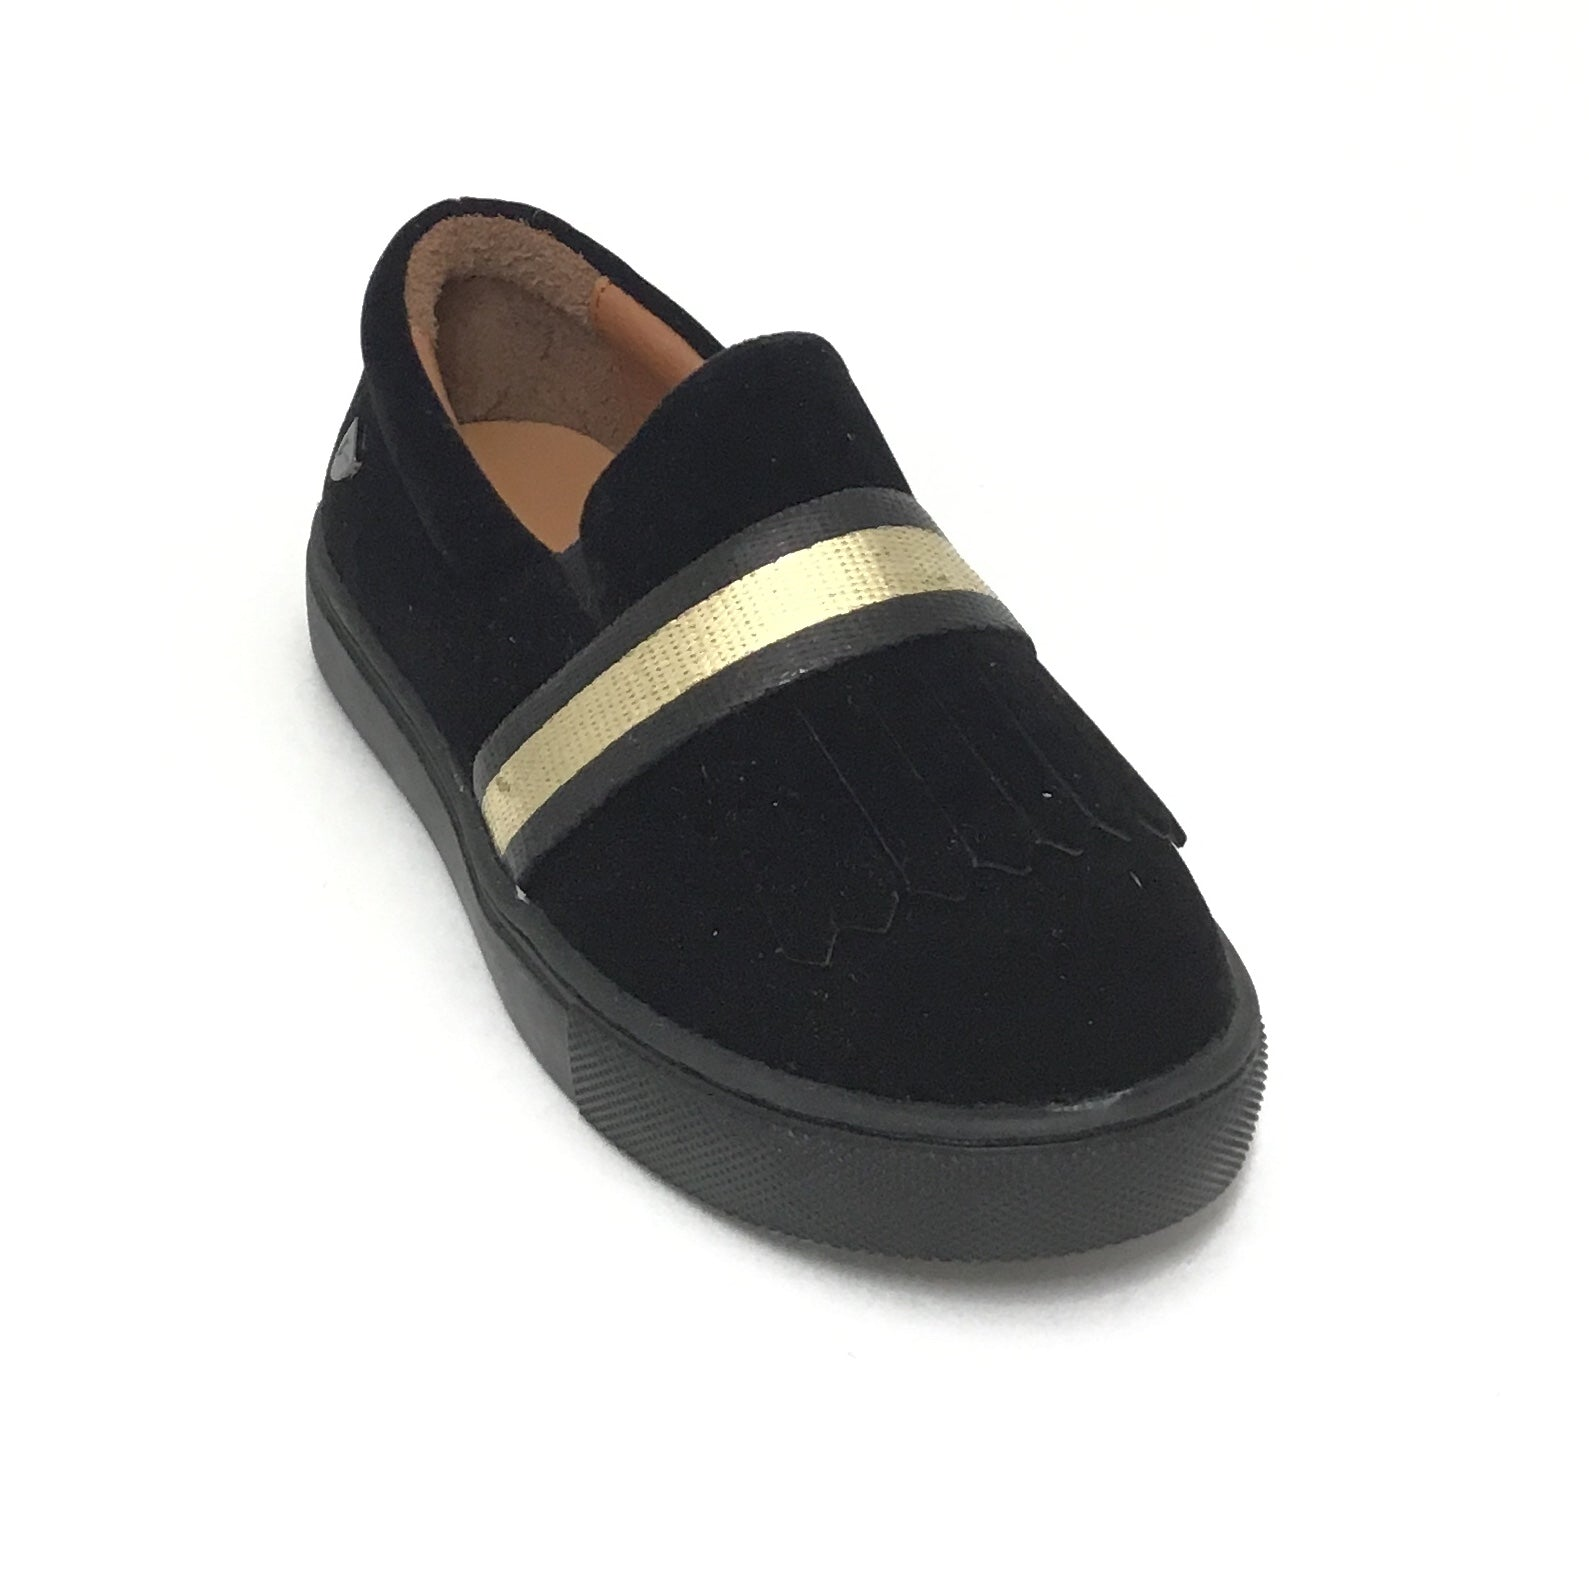 Venettini Black Velvet Sneaker With Gold Band